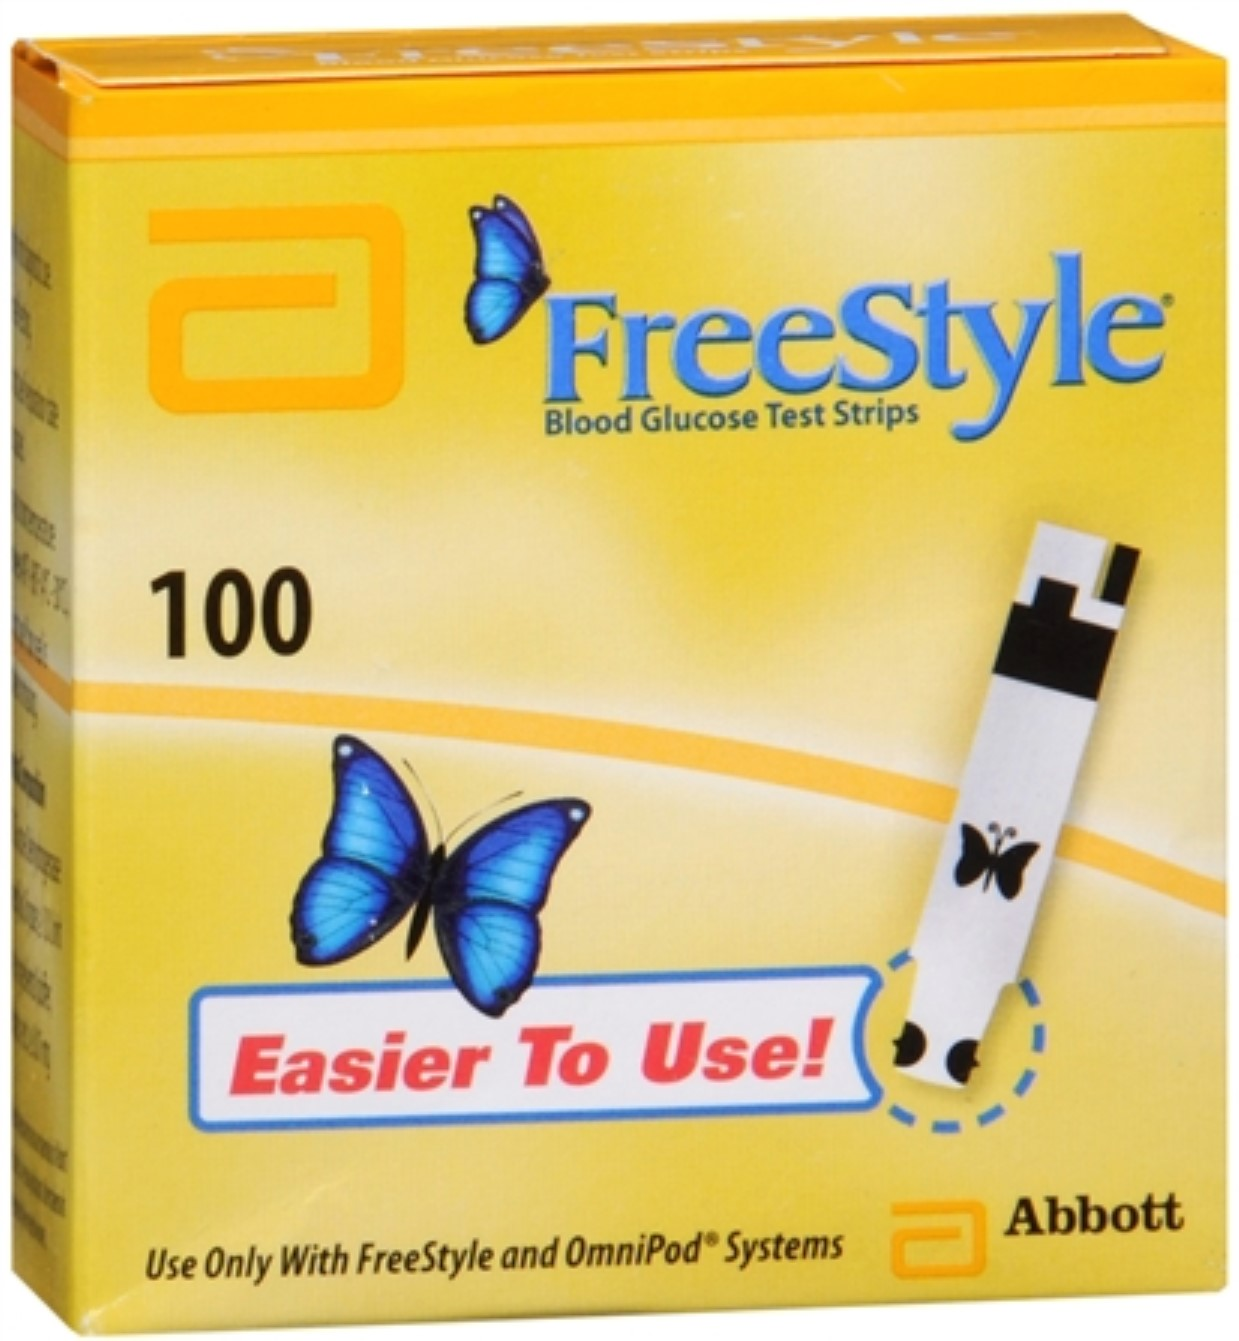 FreeStyle Blood Glucose Test Strips 100 Each (Pack of 6)